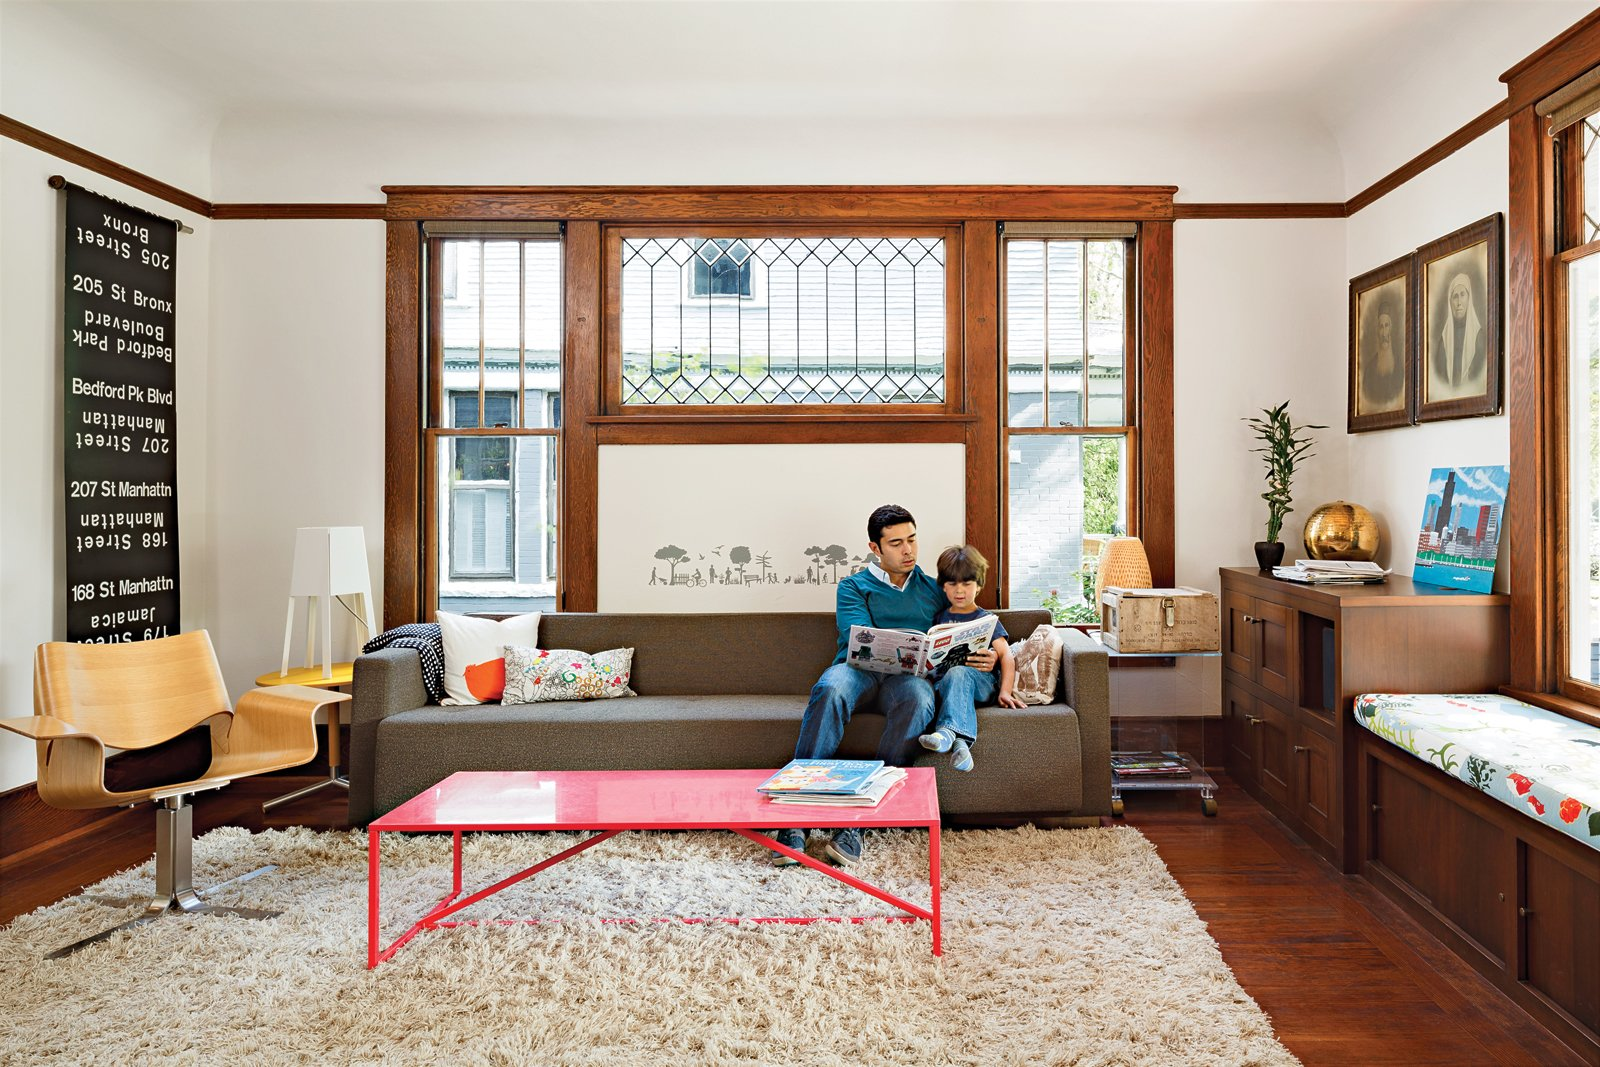 #modern #interior #livingroom #decorated #walls #ambience #rug  Photo by Lincoln Barbour   Tips for Creating a Comfortable Living Room by Drew McGukin from Sofas